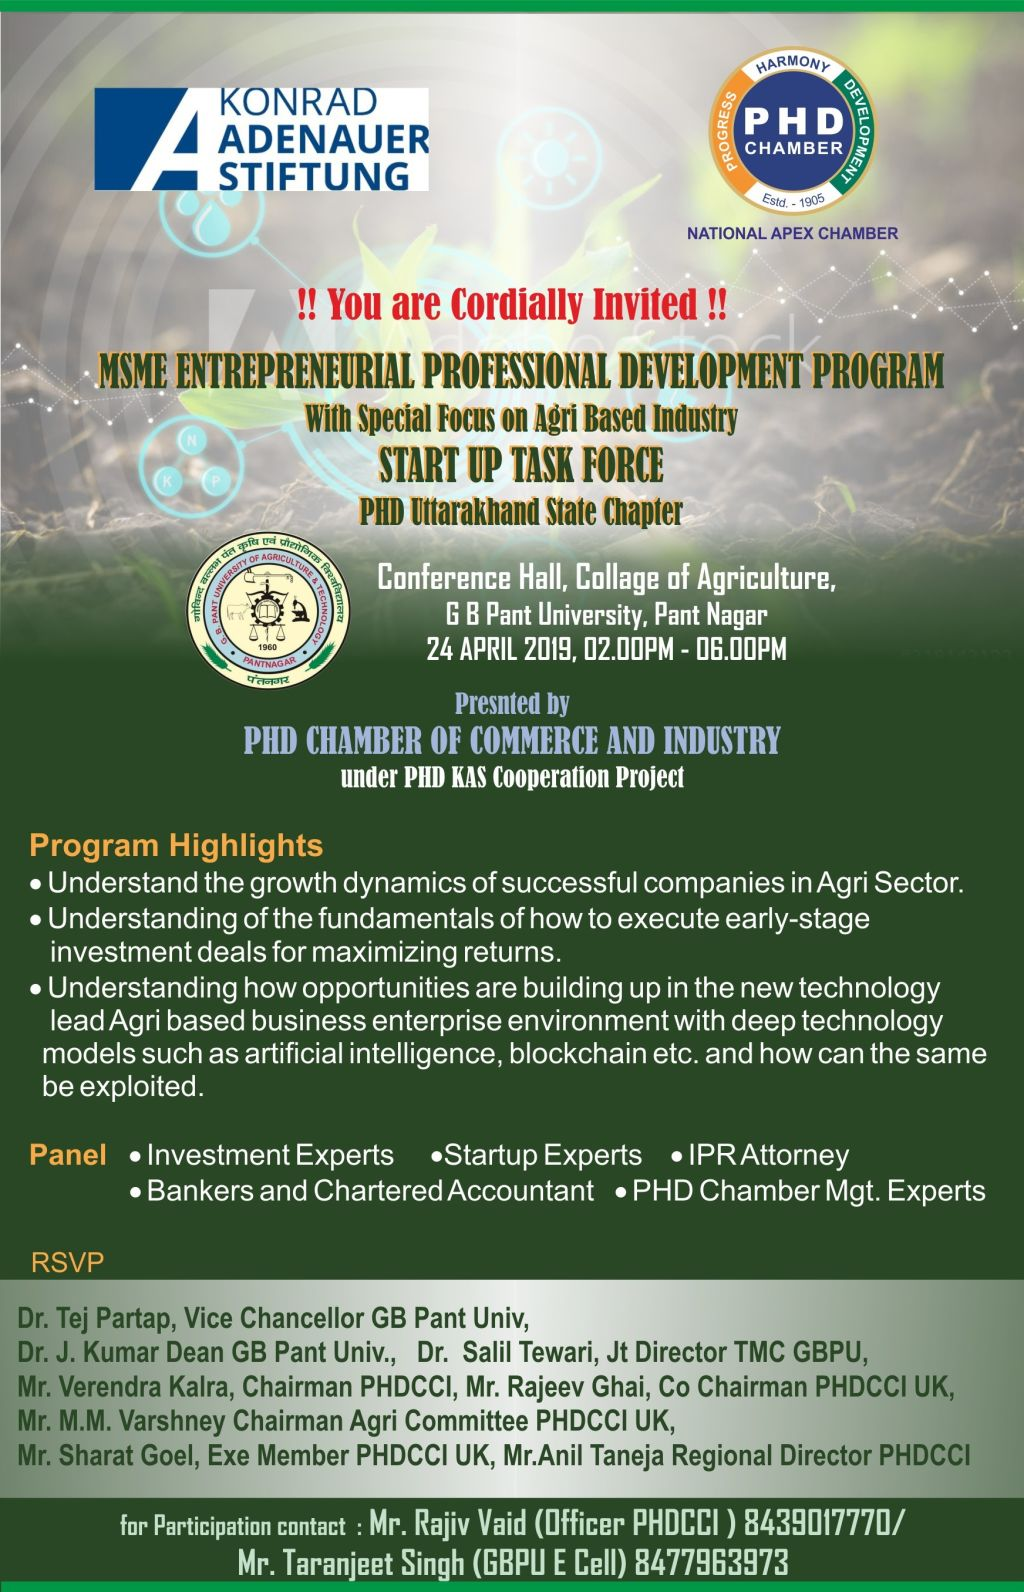 MSME Entrepreneurial Professional Development Program